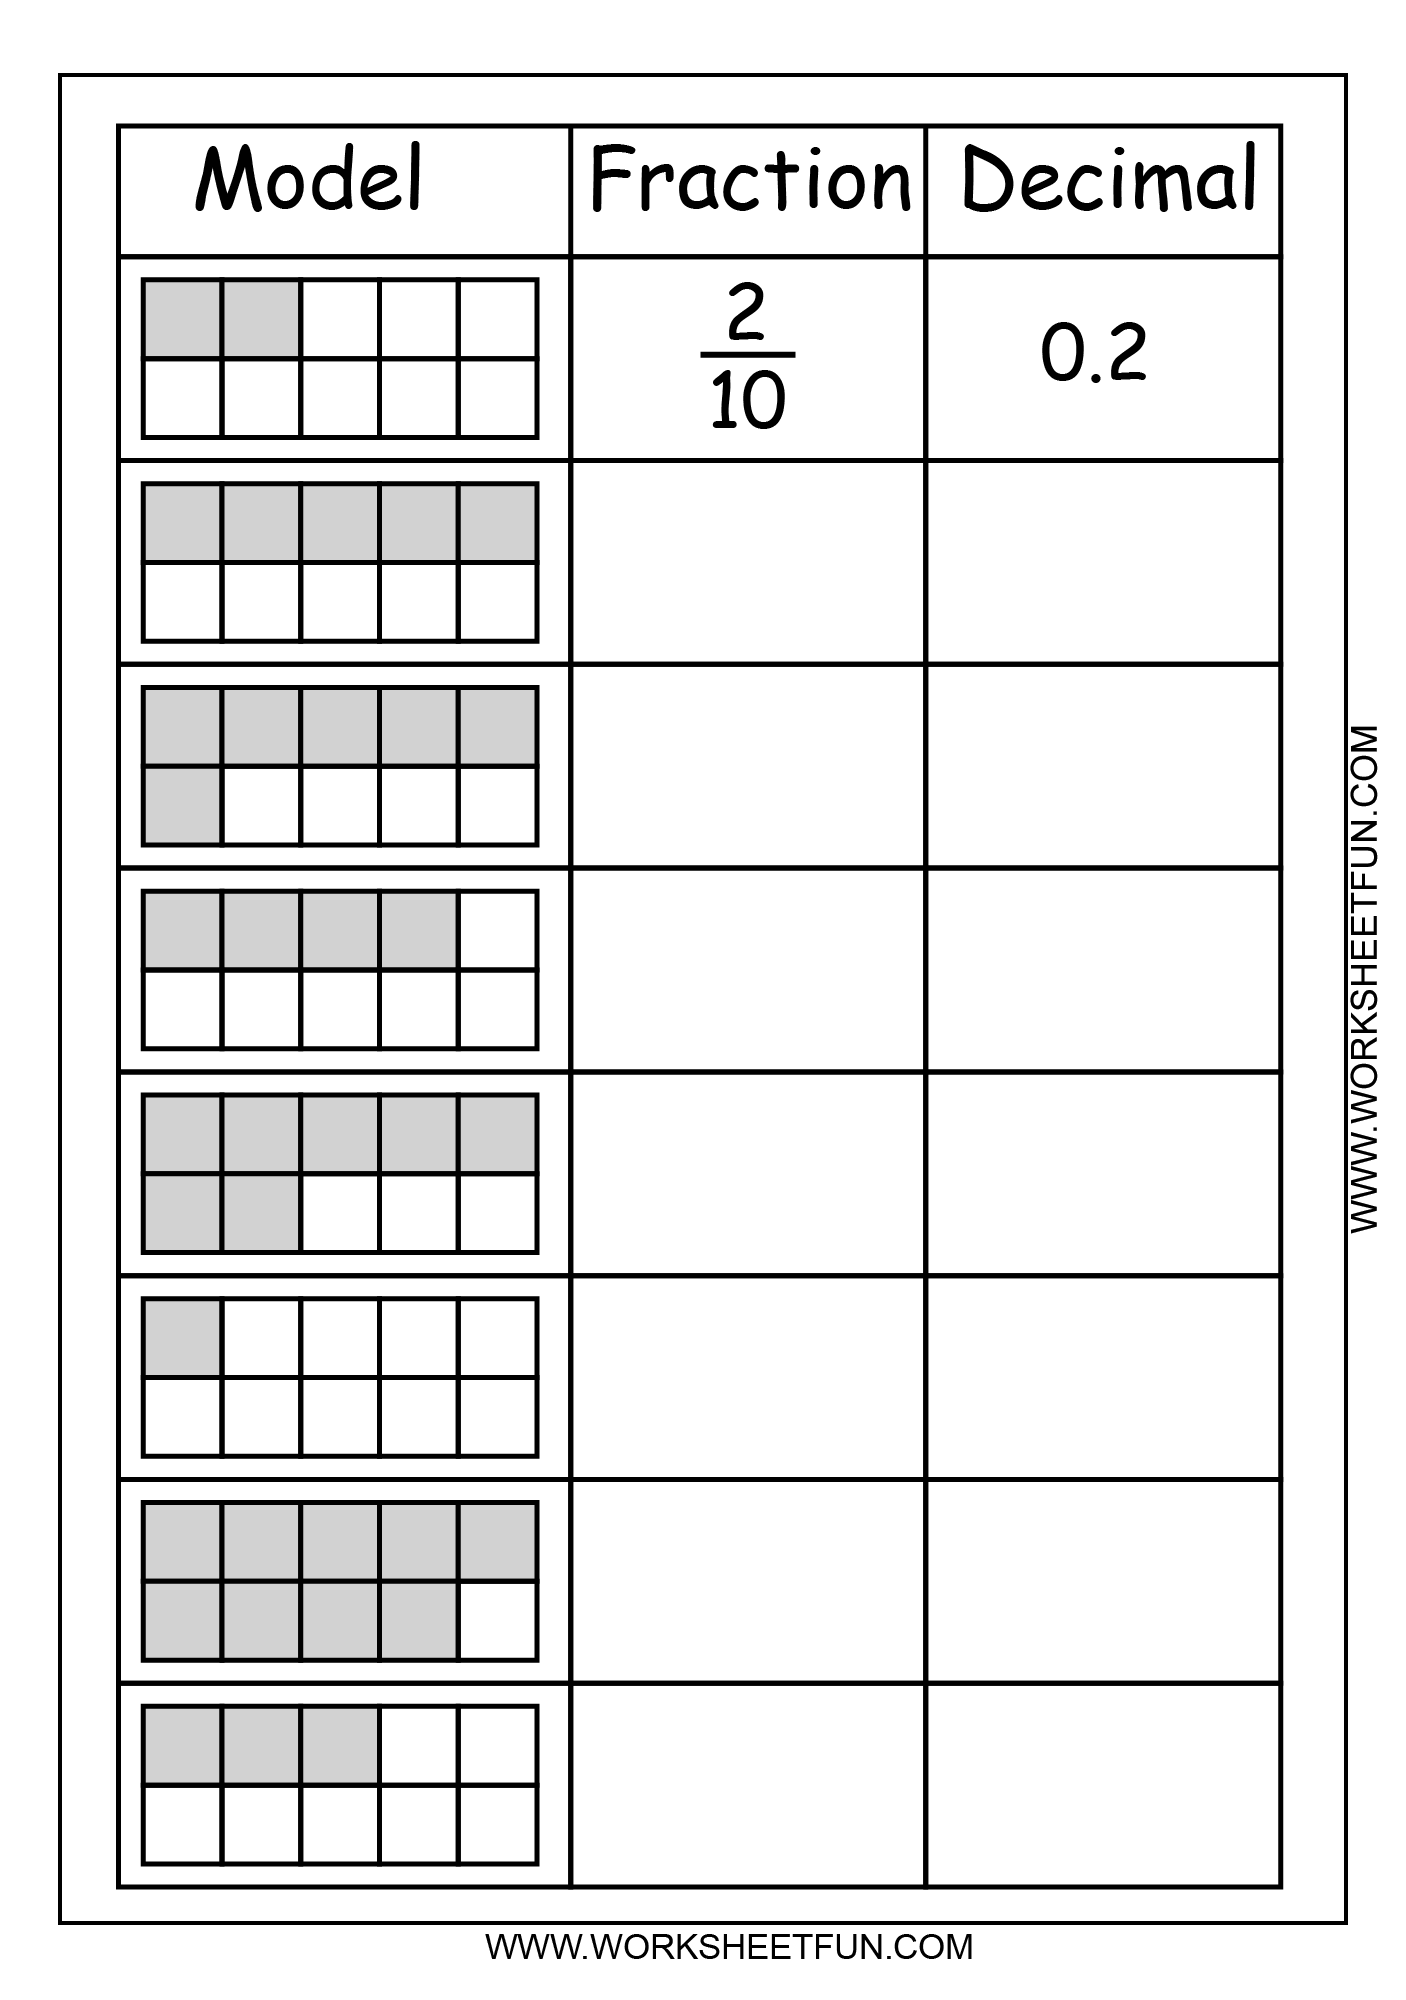 model fraction decimal  printable worksheets  fractions math  model fraction decimal